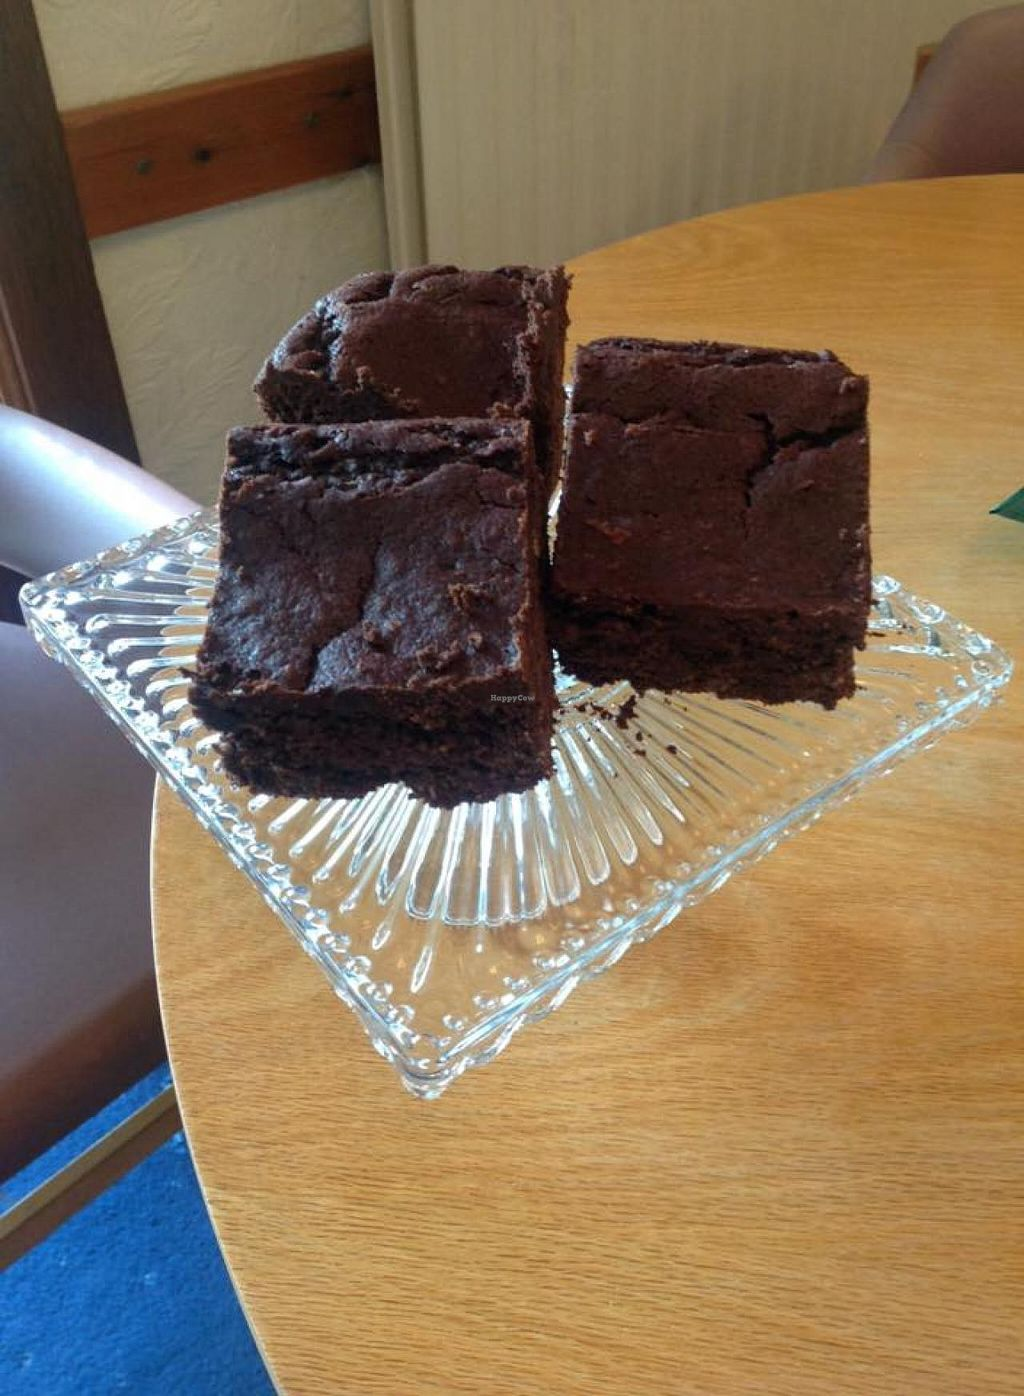 """Photo of CLOSED: The Green Tea Room  by <a href=""""/members/profile/Stevie"""">Stevie</a> <br/>Vegan chocolate brownies <br/> July 23, 2015  - <a href='/contact/abuse/image/5429/110631'>Report</a>"""